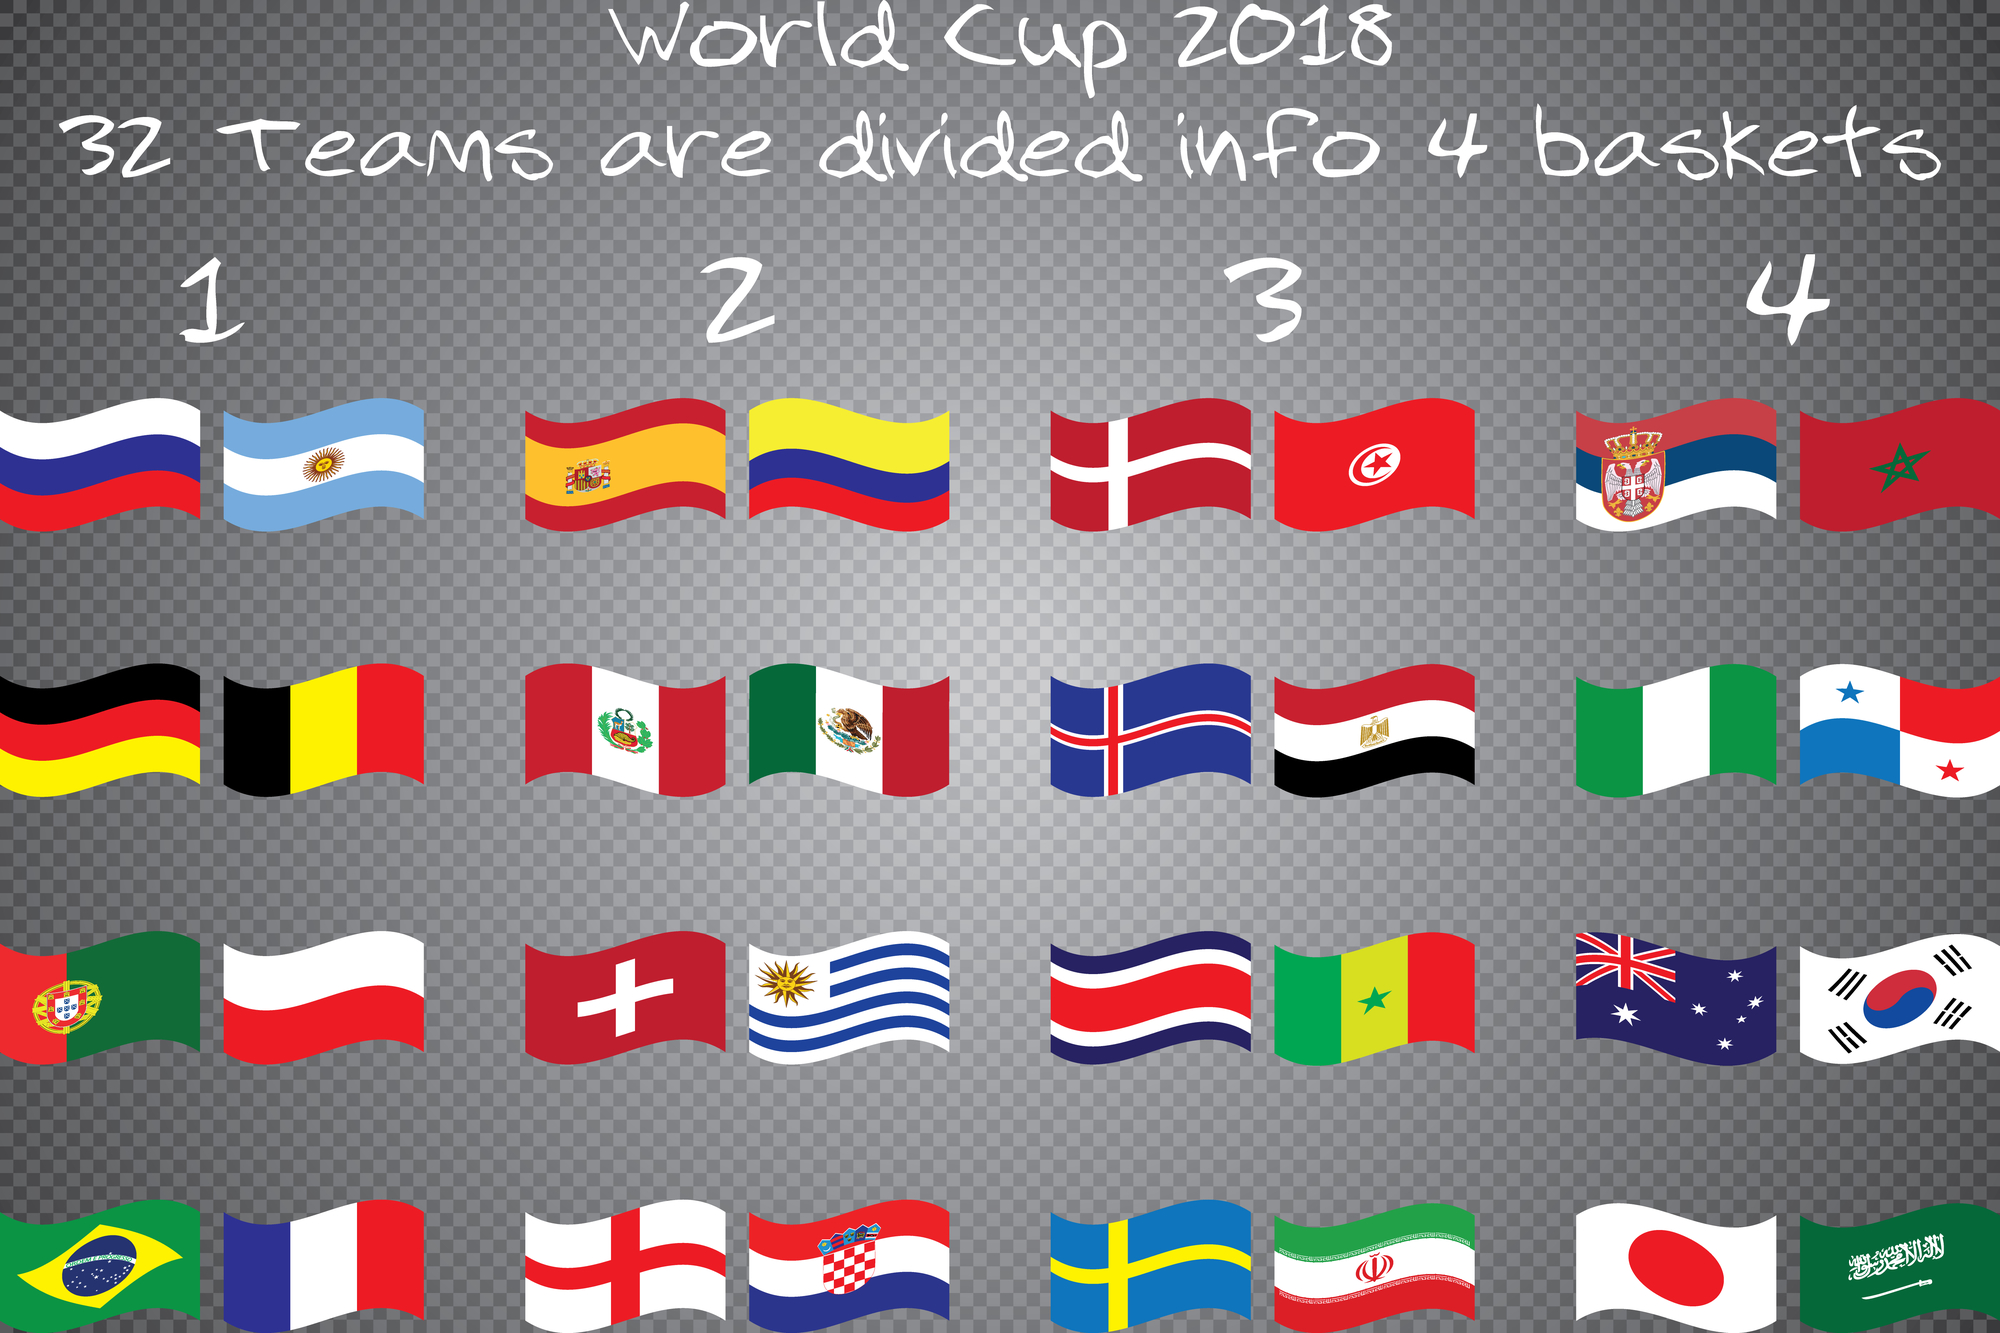 World Cup 2018 teams